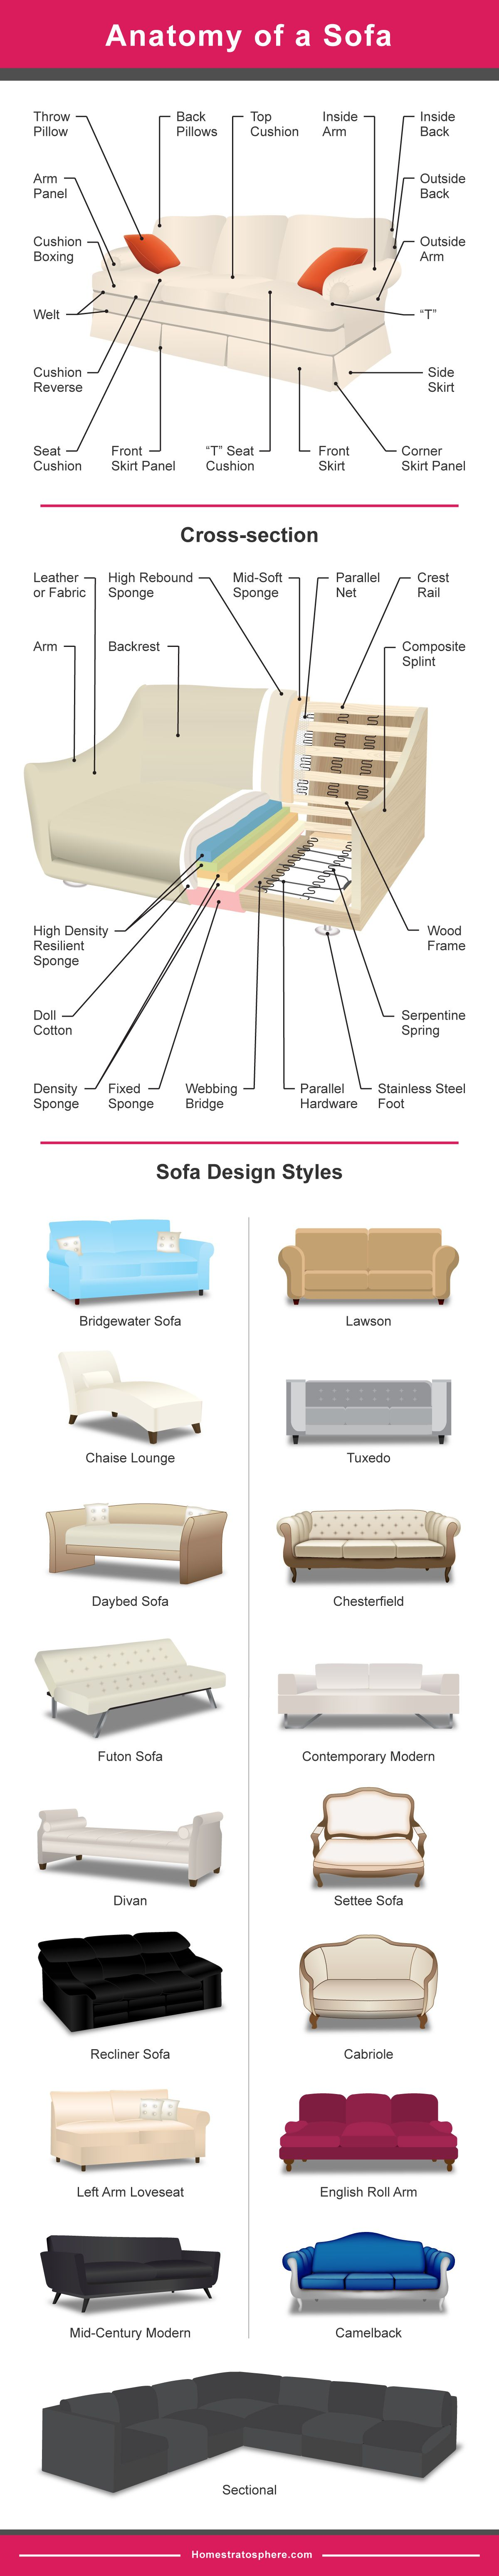 22 Types Of Sofas Couches Explained With Pictures Types Of